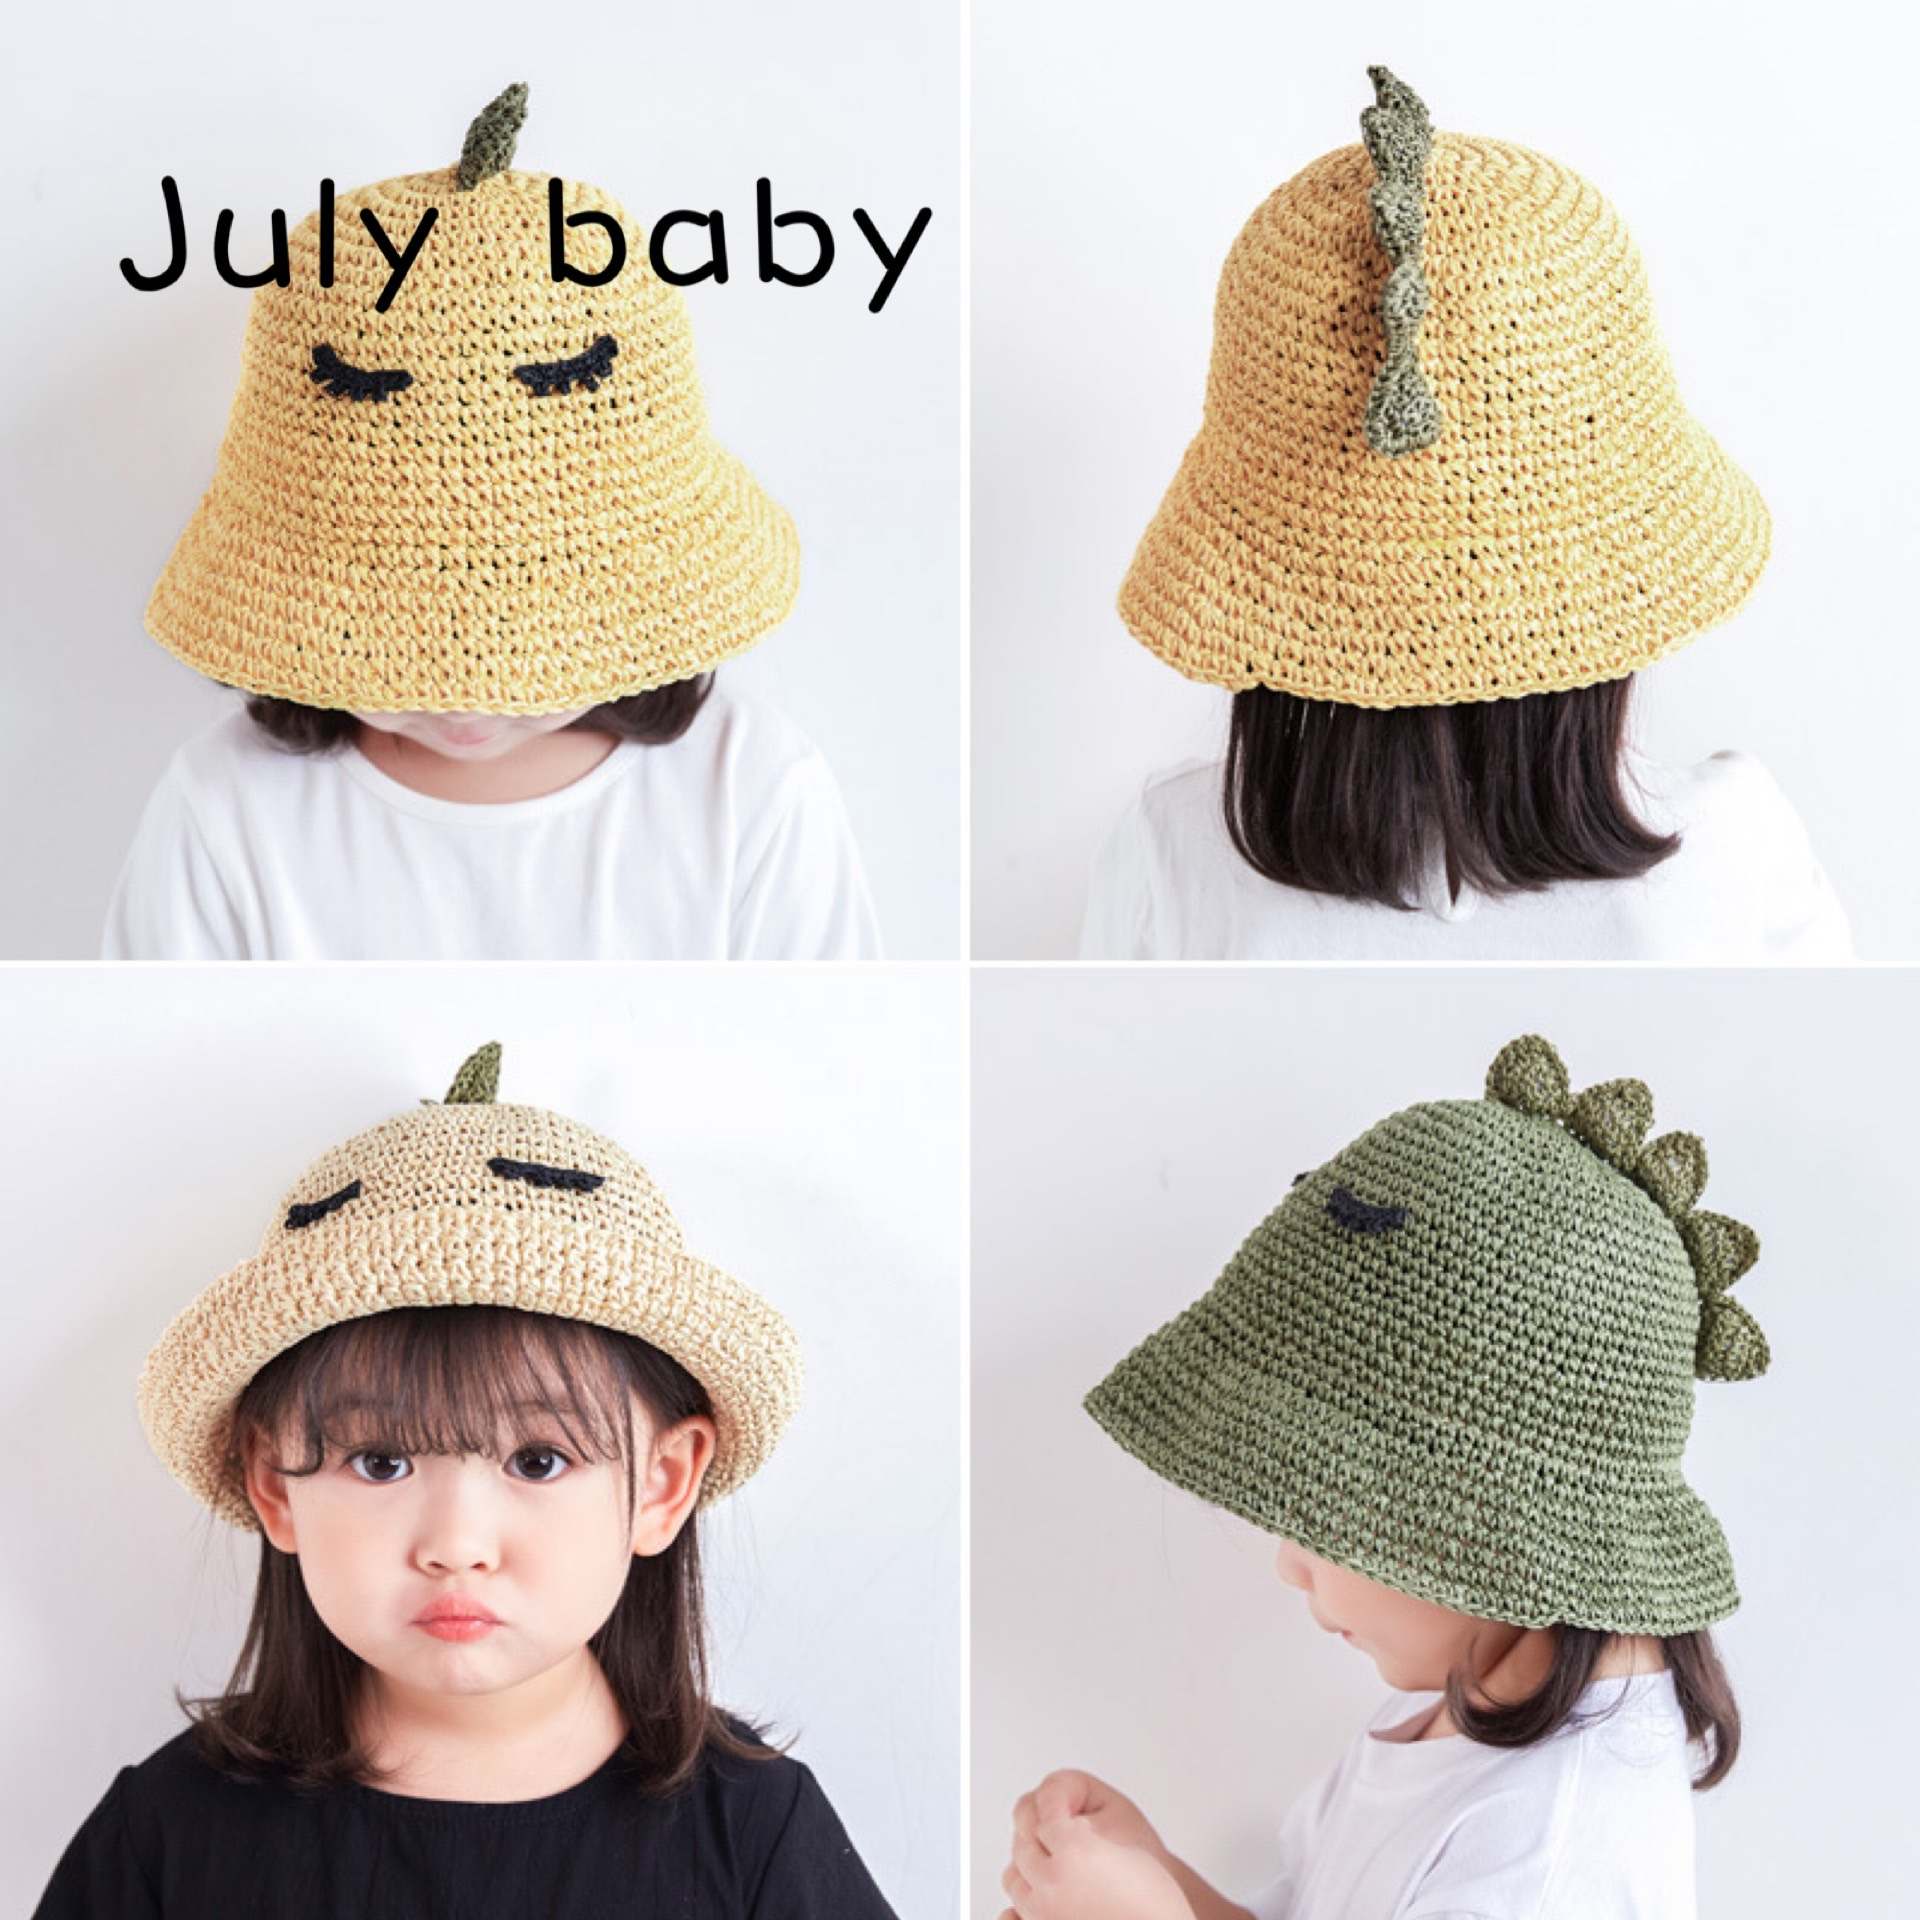 July Baby Child Sun Hat Cute Little Dinosaur Cartoon Shape Curling Straw Hat Outdoor Shade Straw Hat, Breathable And Comfortable